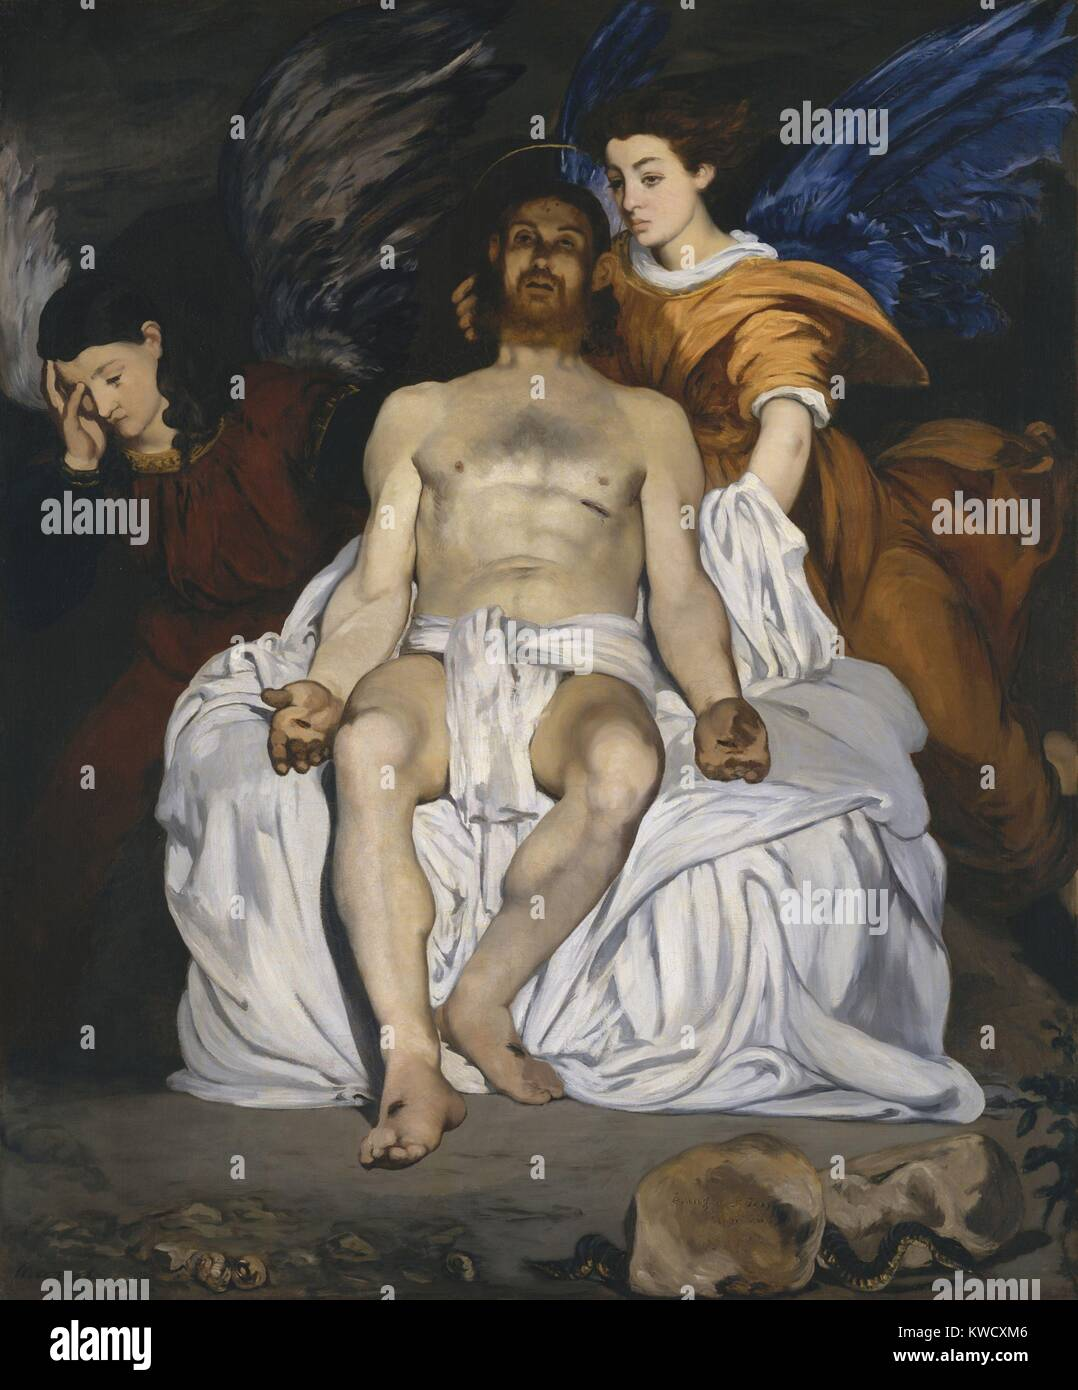 The Dead Christ with Angels, by Edouard Manet, 1864, French impressionist painting, oil on canvas (BSLOC 2017 3 Stock Photo